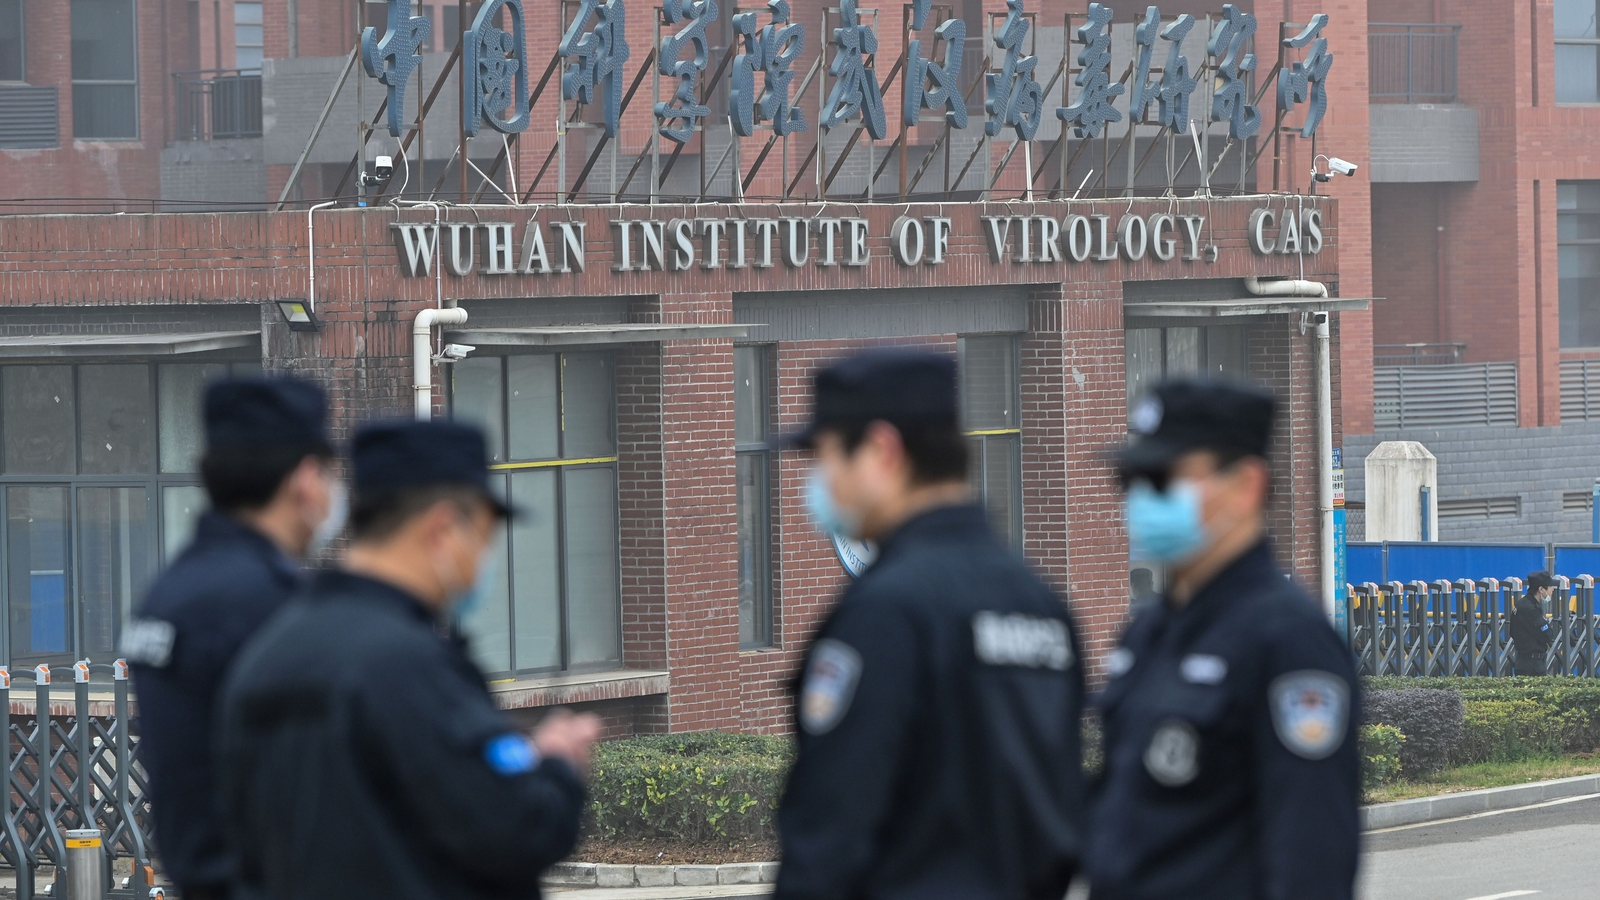 Image - Security stand guard outside the Wuhan Institute of Virology as members of the World Health Organisation visit the institute